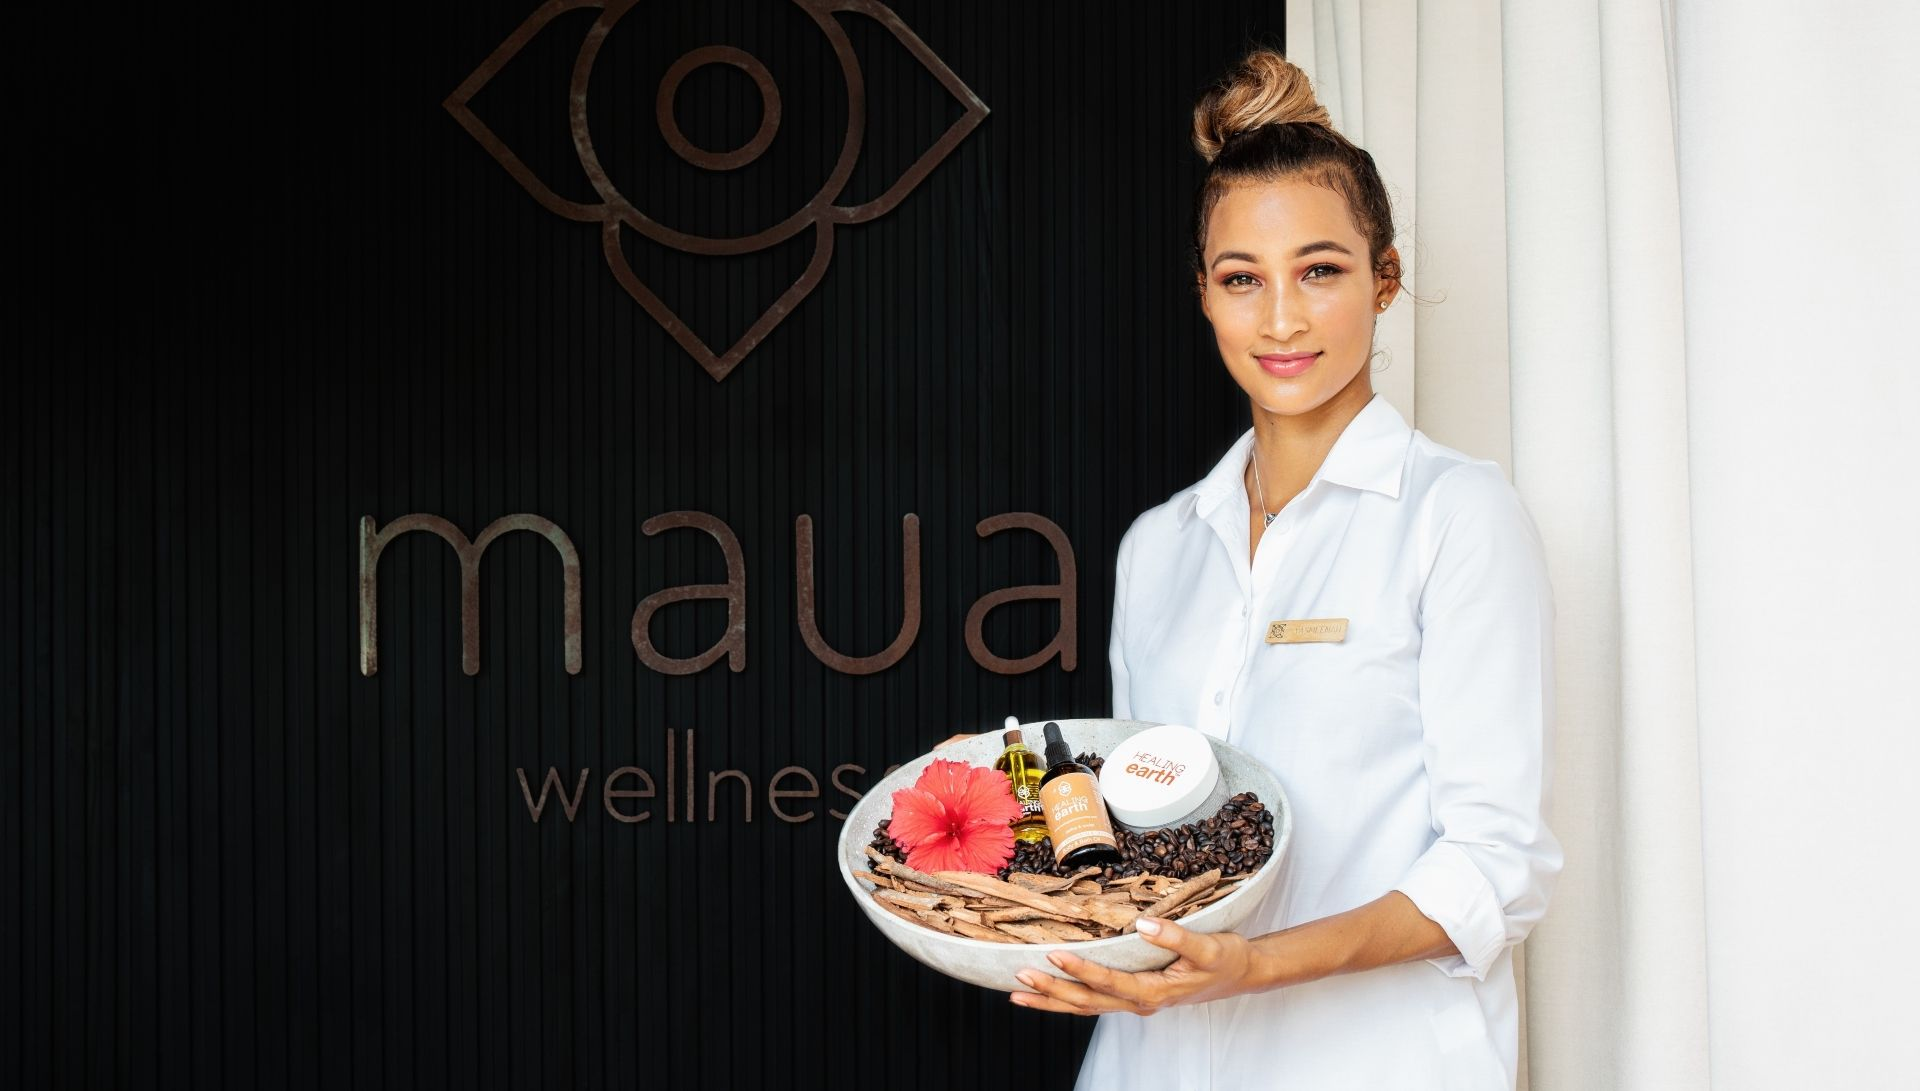 Maua wellness with locally sourced products